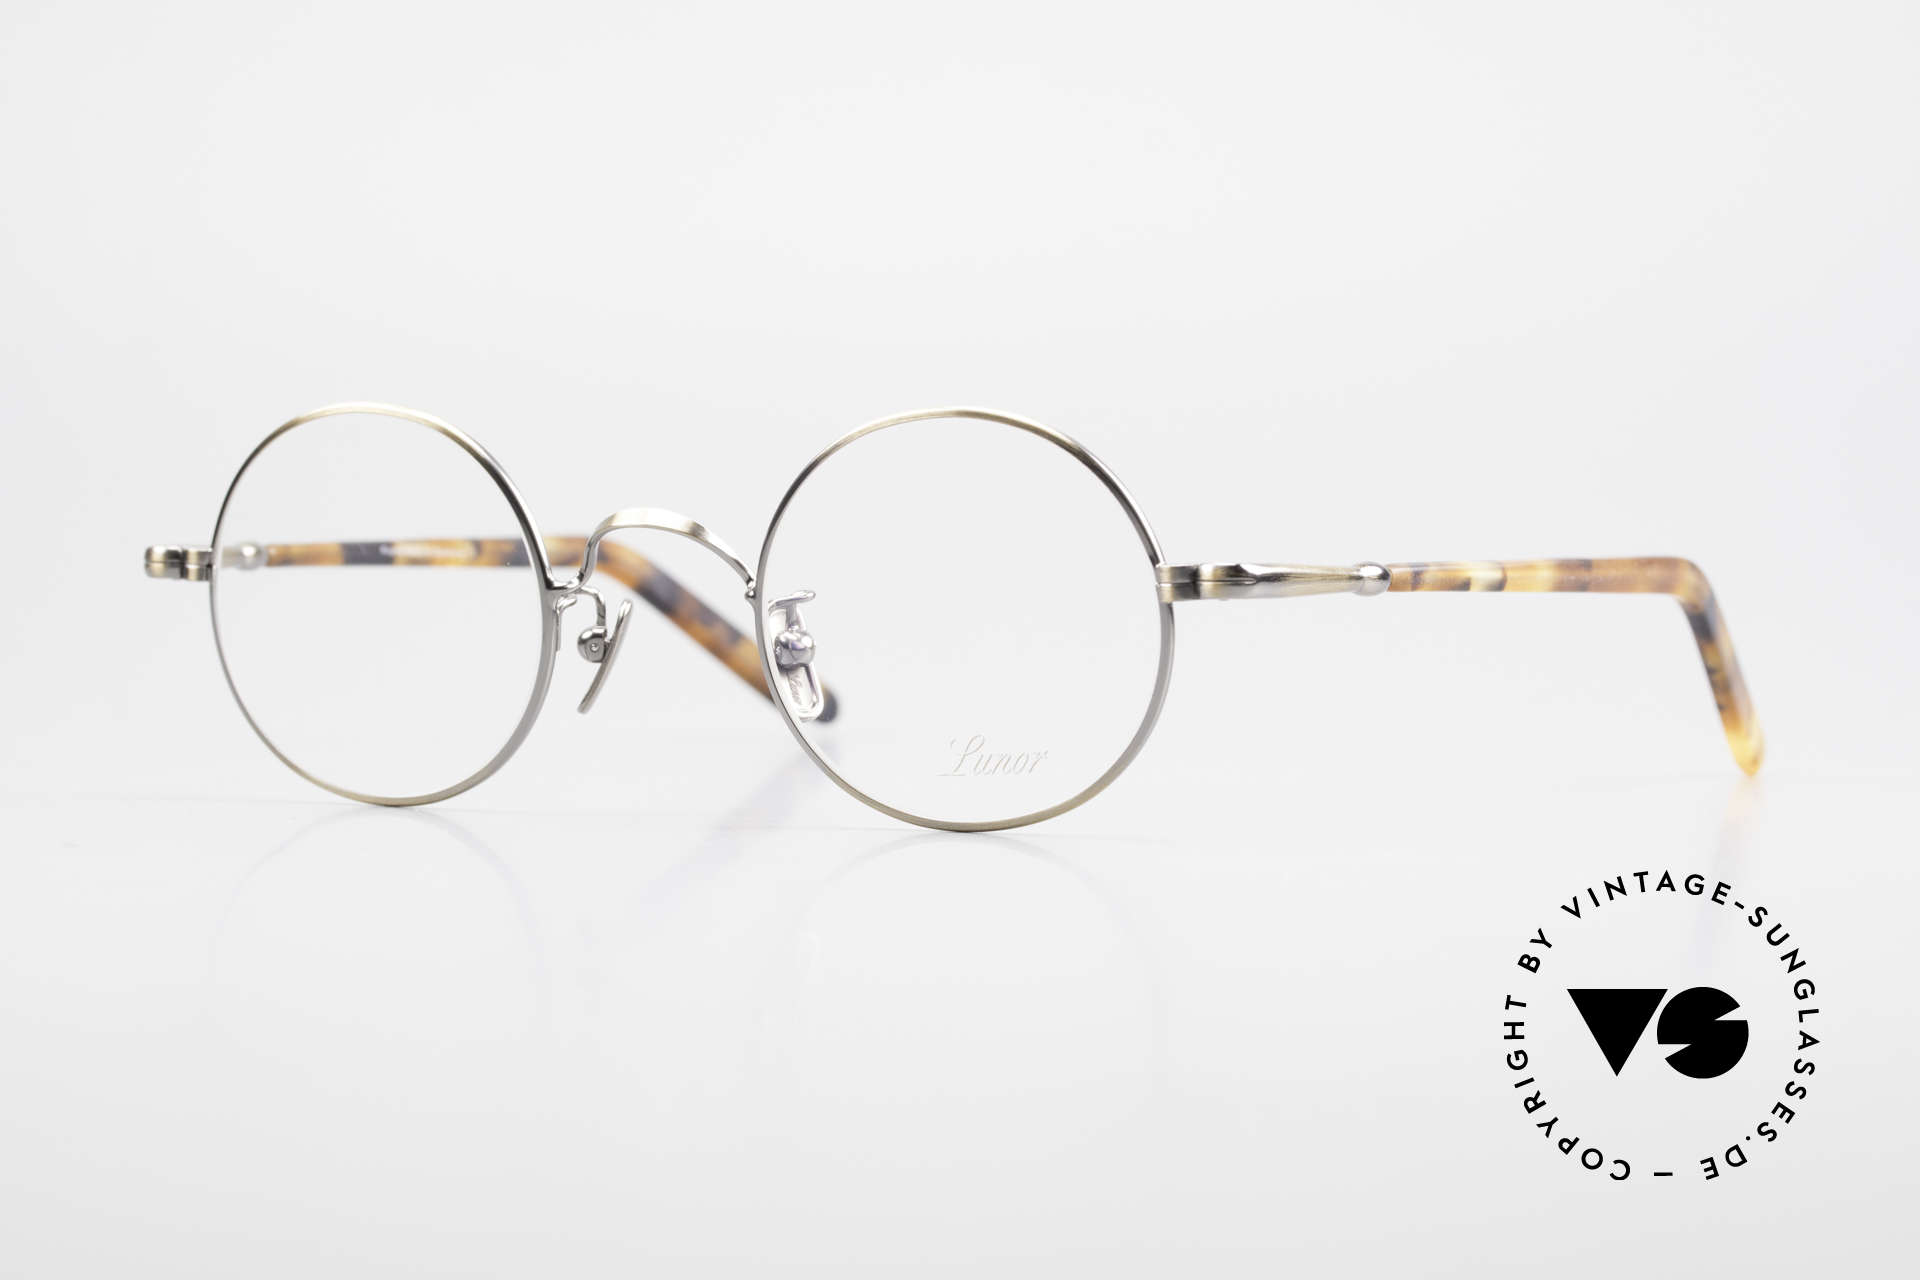 Lunor VA 110 Round Lunor Glasses Original, old Lunor eyeglasses from the 2012's eyewear collection, Made for Men and Women